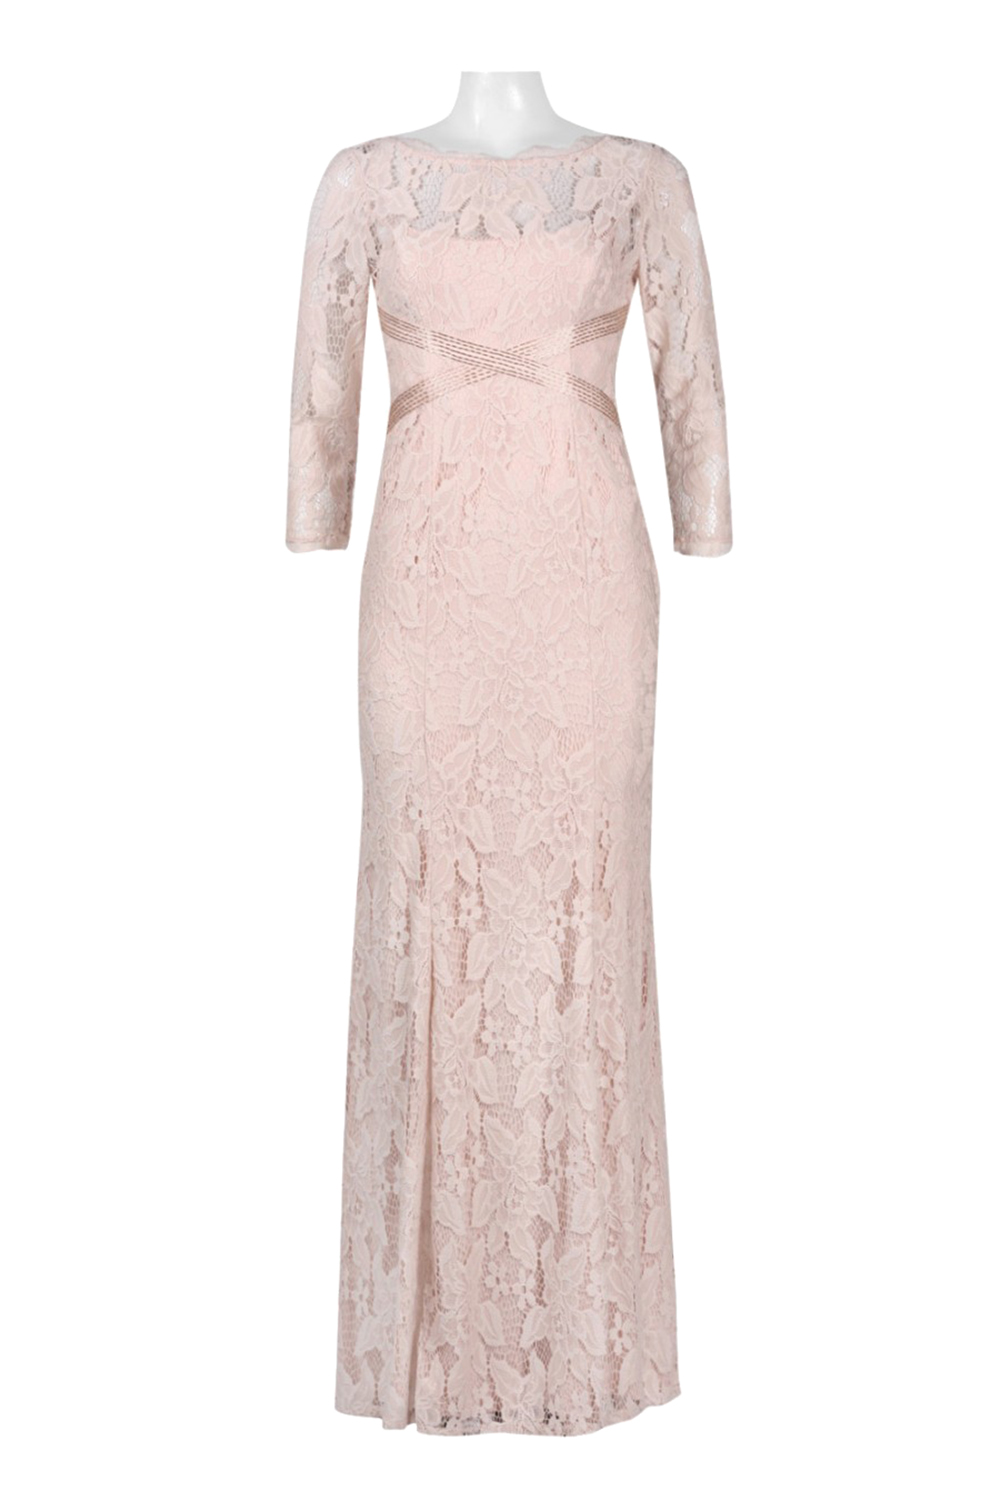 16 Adrianna Papell Blush Pink Beaded Bands Lace Illusion Sheath Gown ...